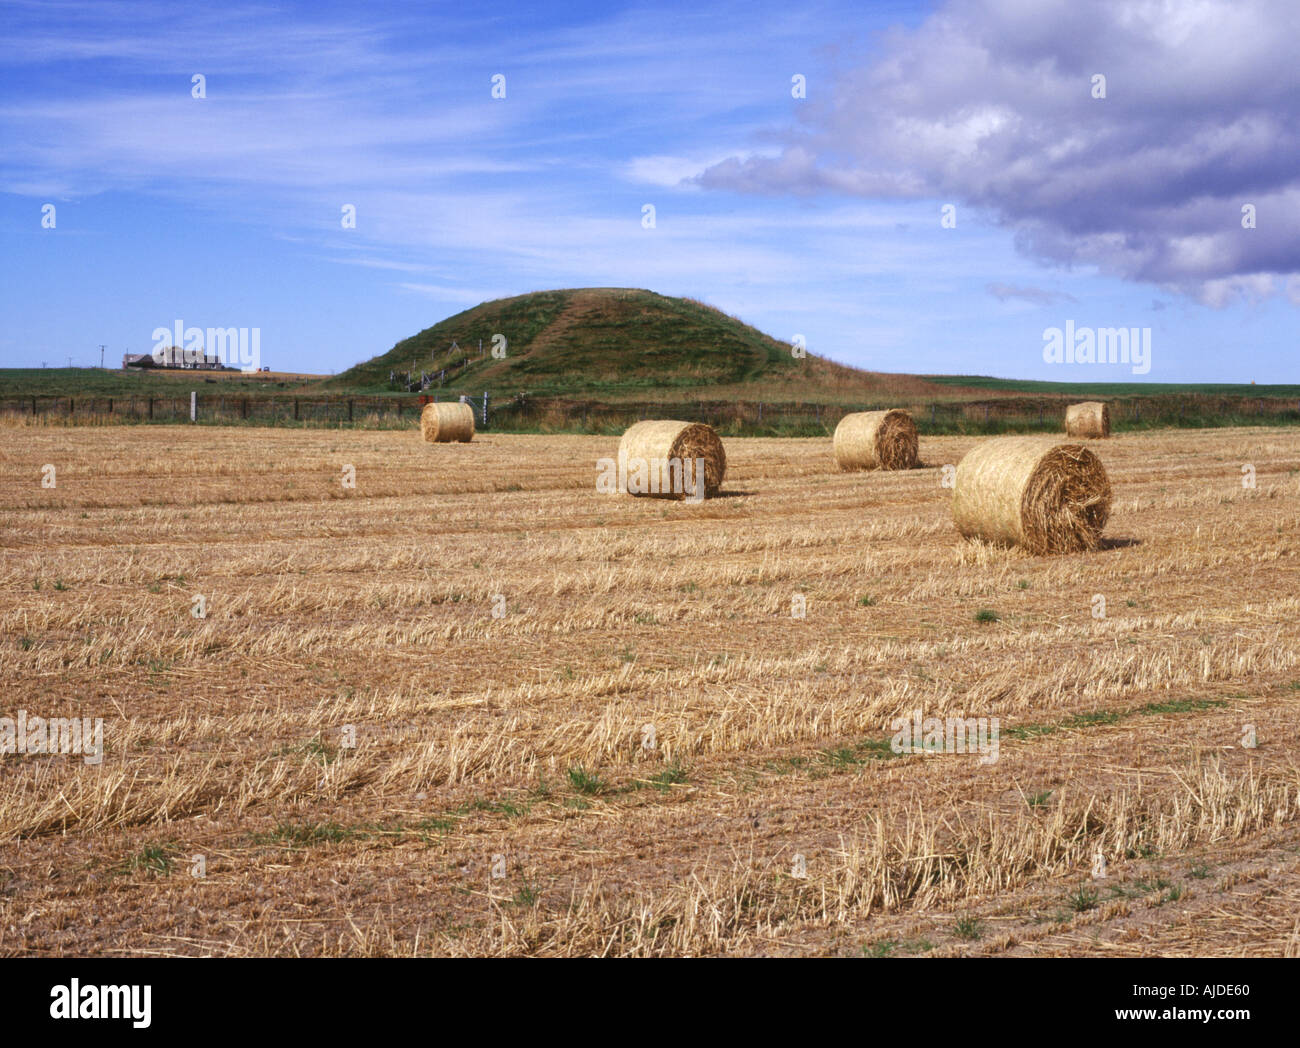 dh Neolithic burial mound MAESHOWE ORKNEY Field farm bales prehistoric chamber tomb bronze age site - Stock Image